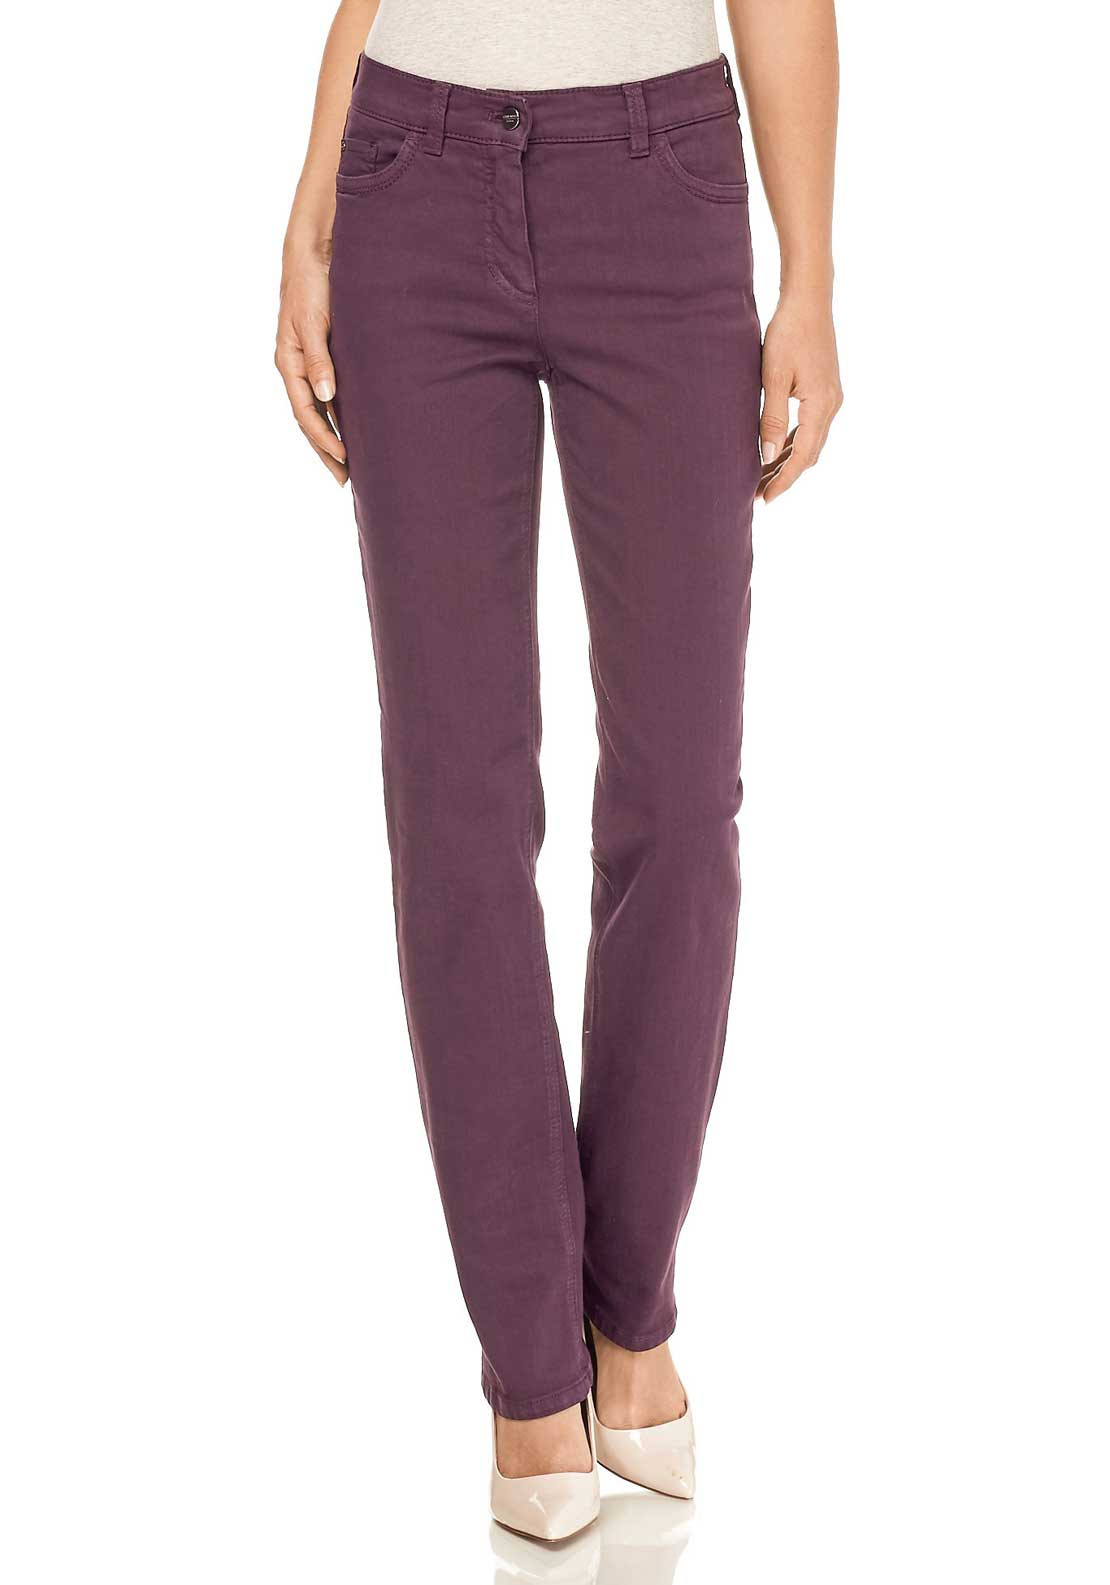 Gerry Weber Romy Straight Short Leg Jeans, Purple